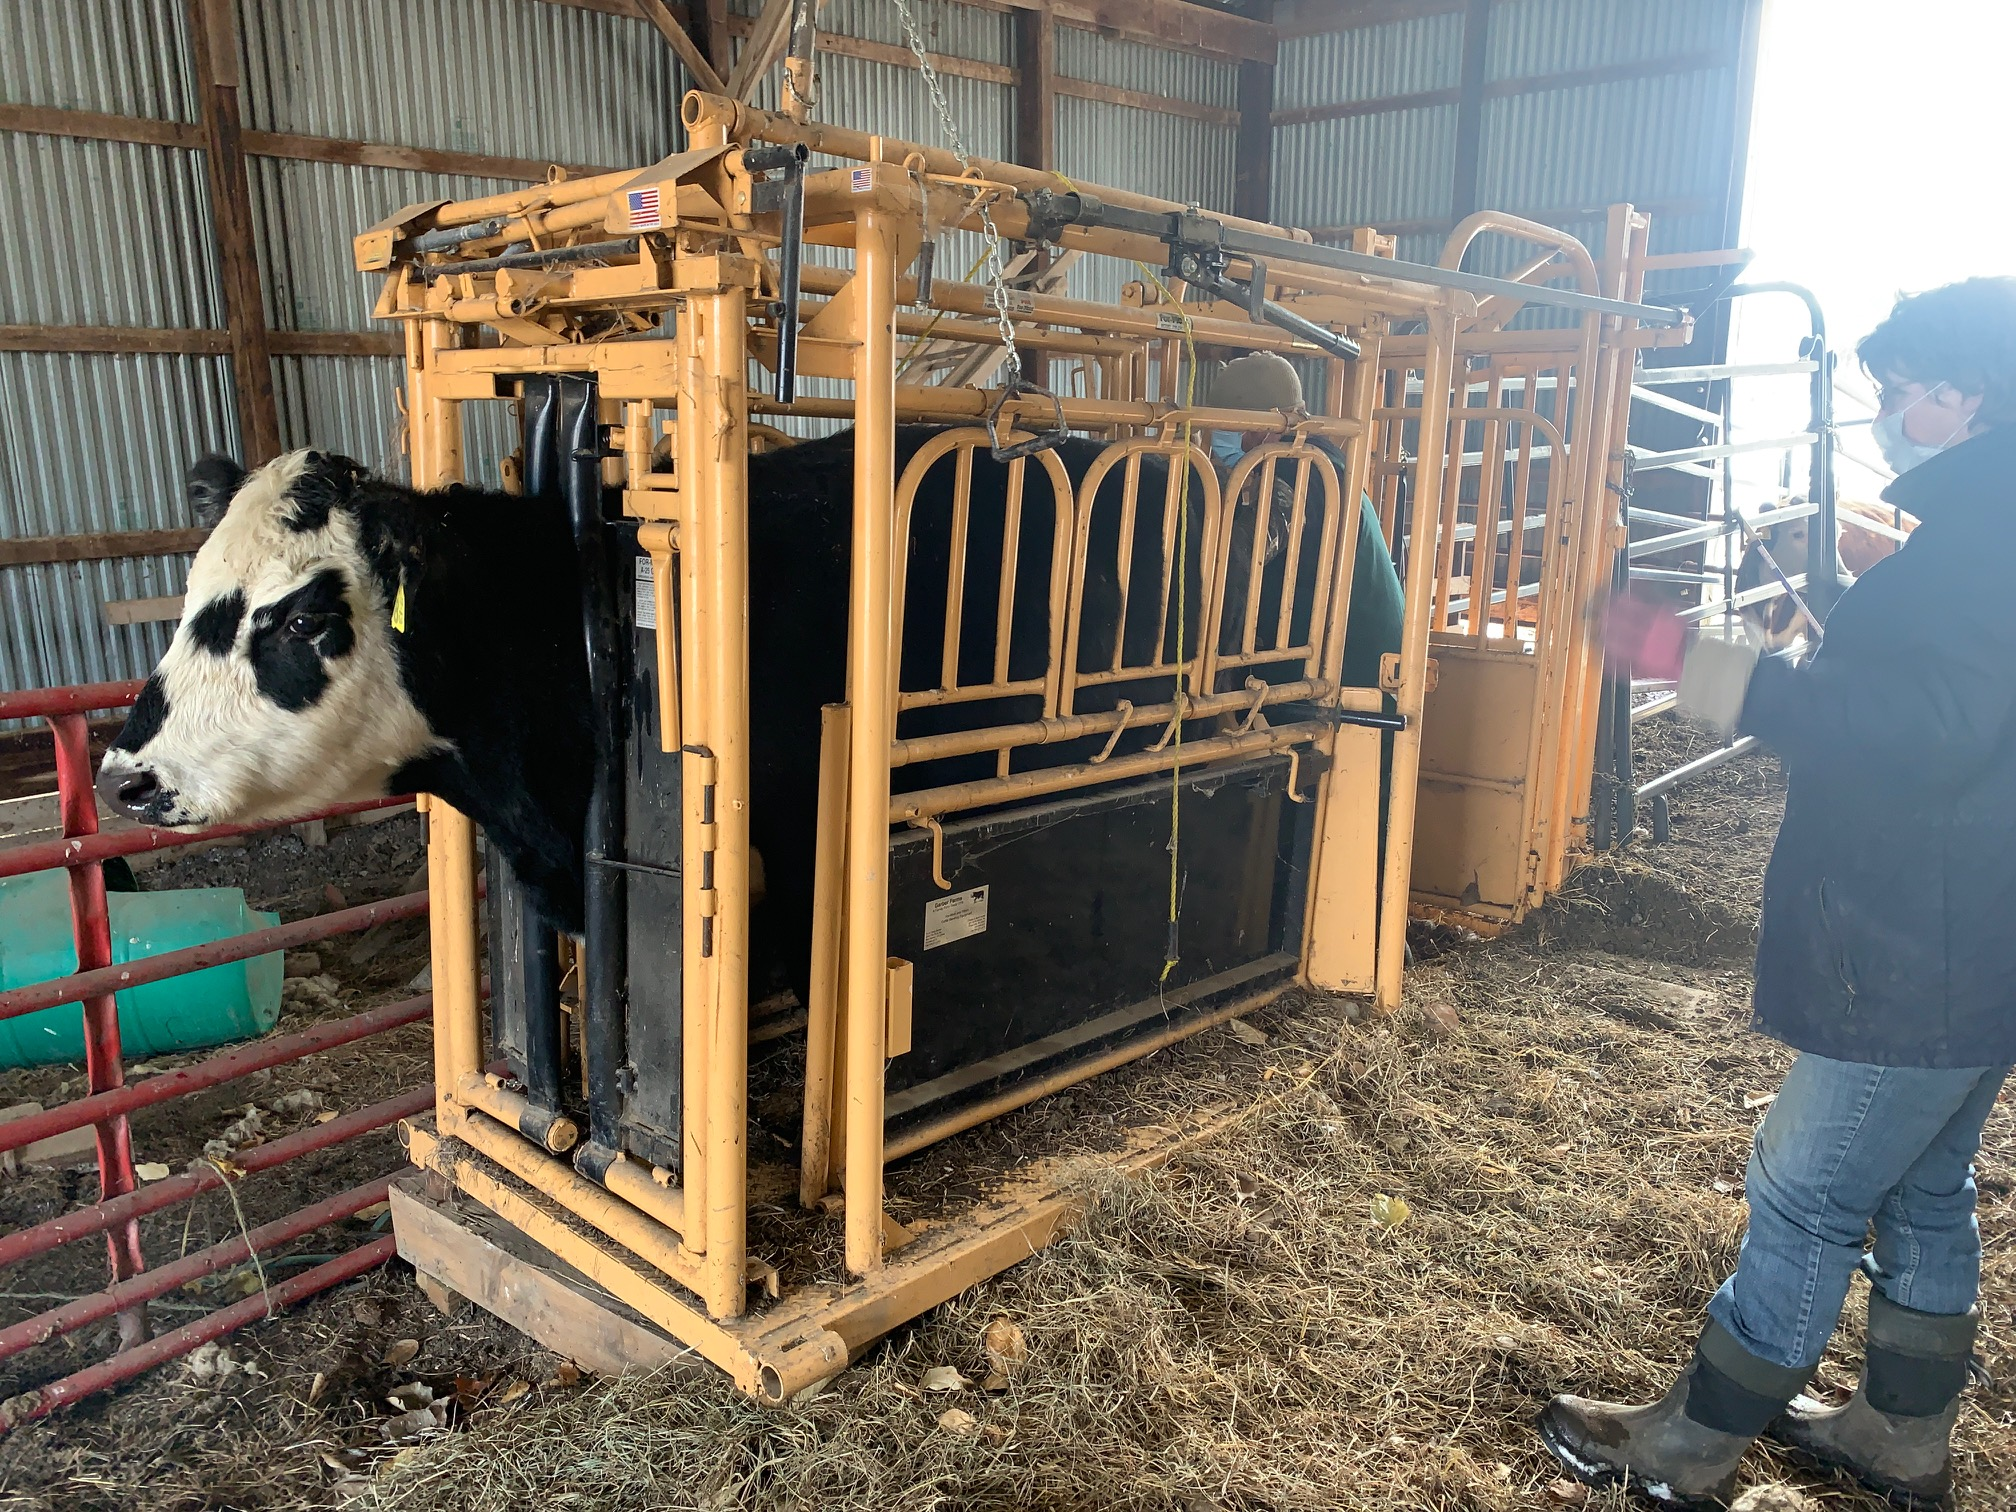 A squeeze chute that allows the safe and efficient handling of animals